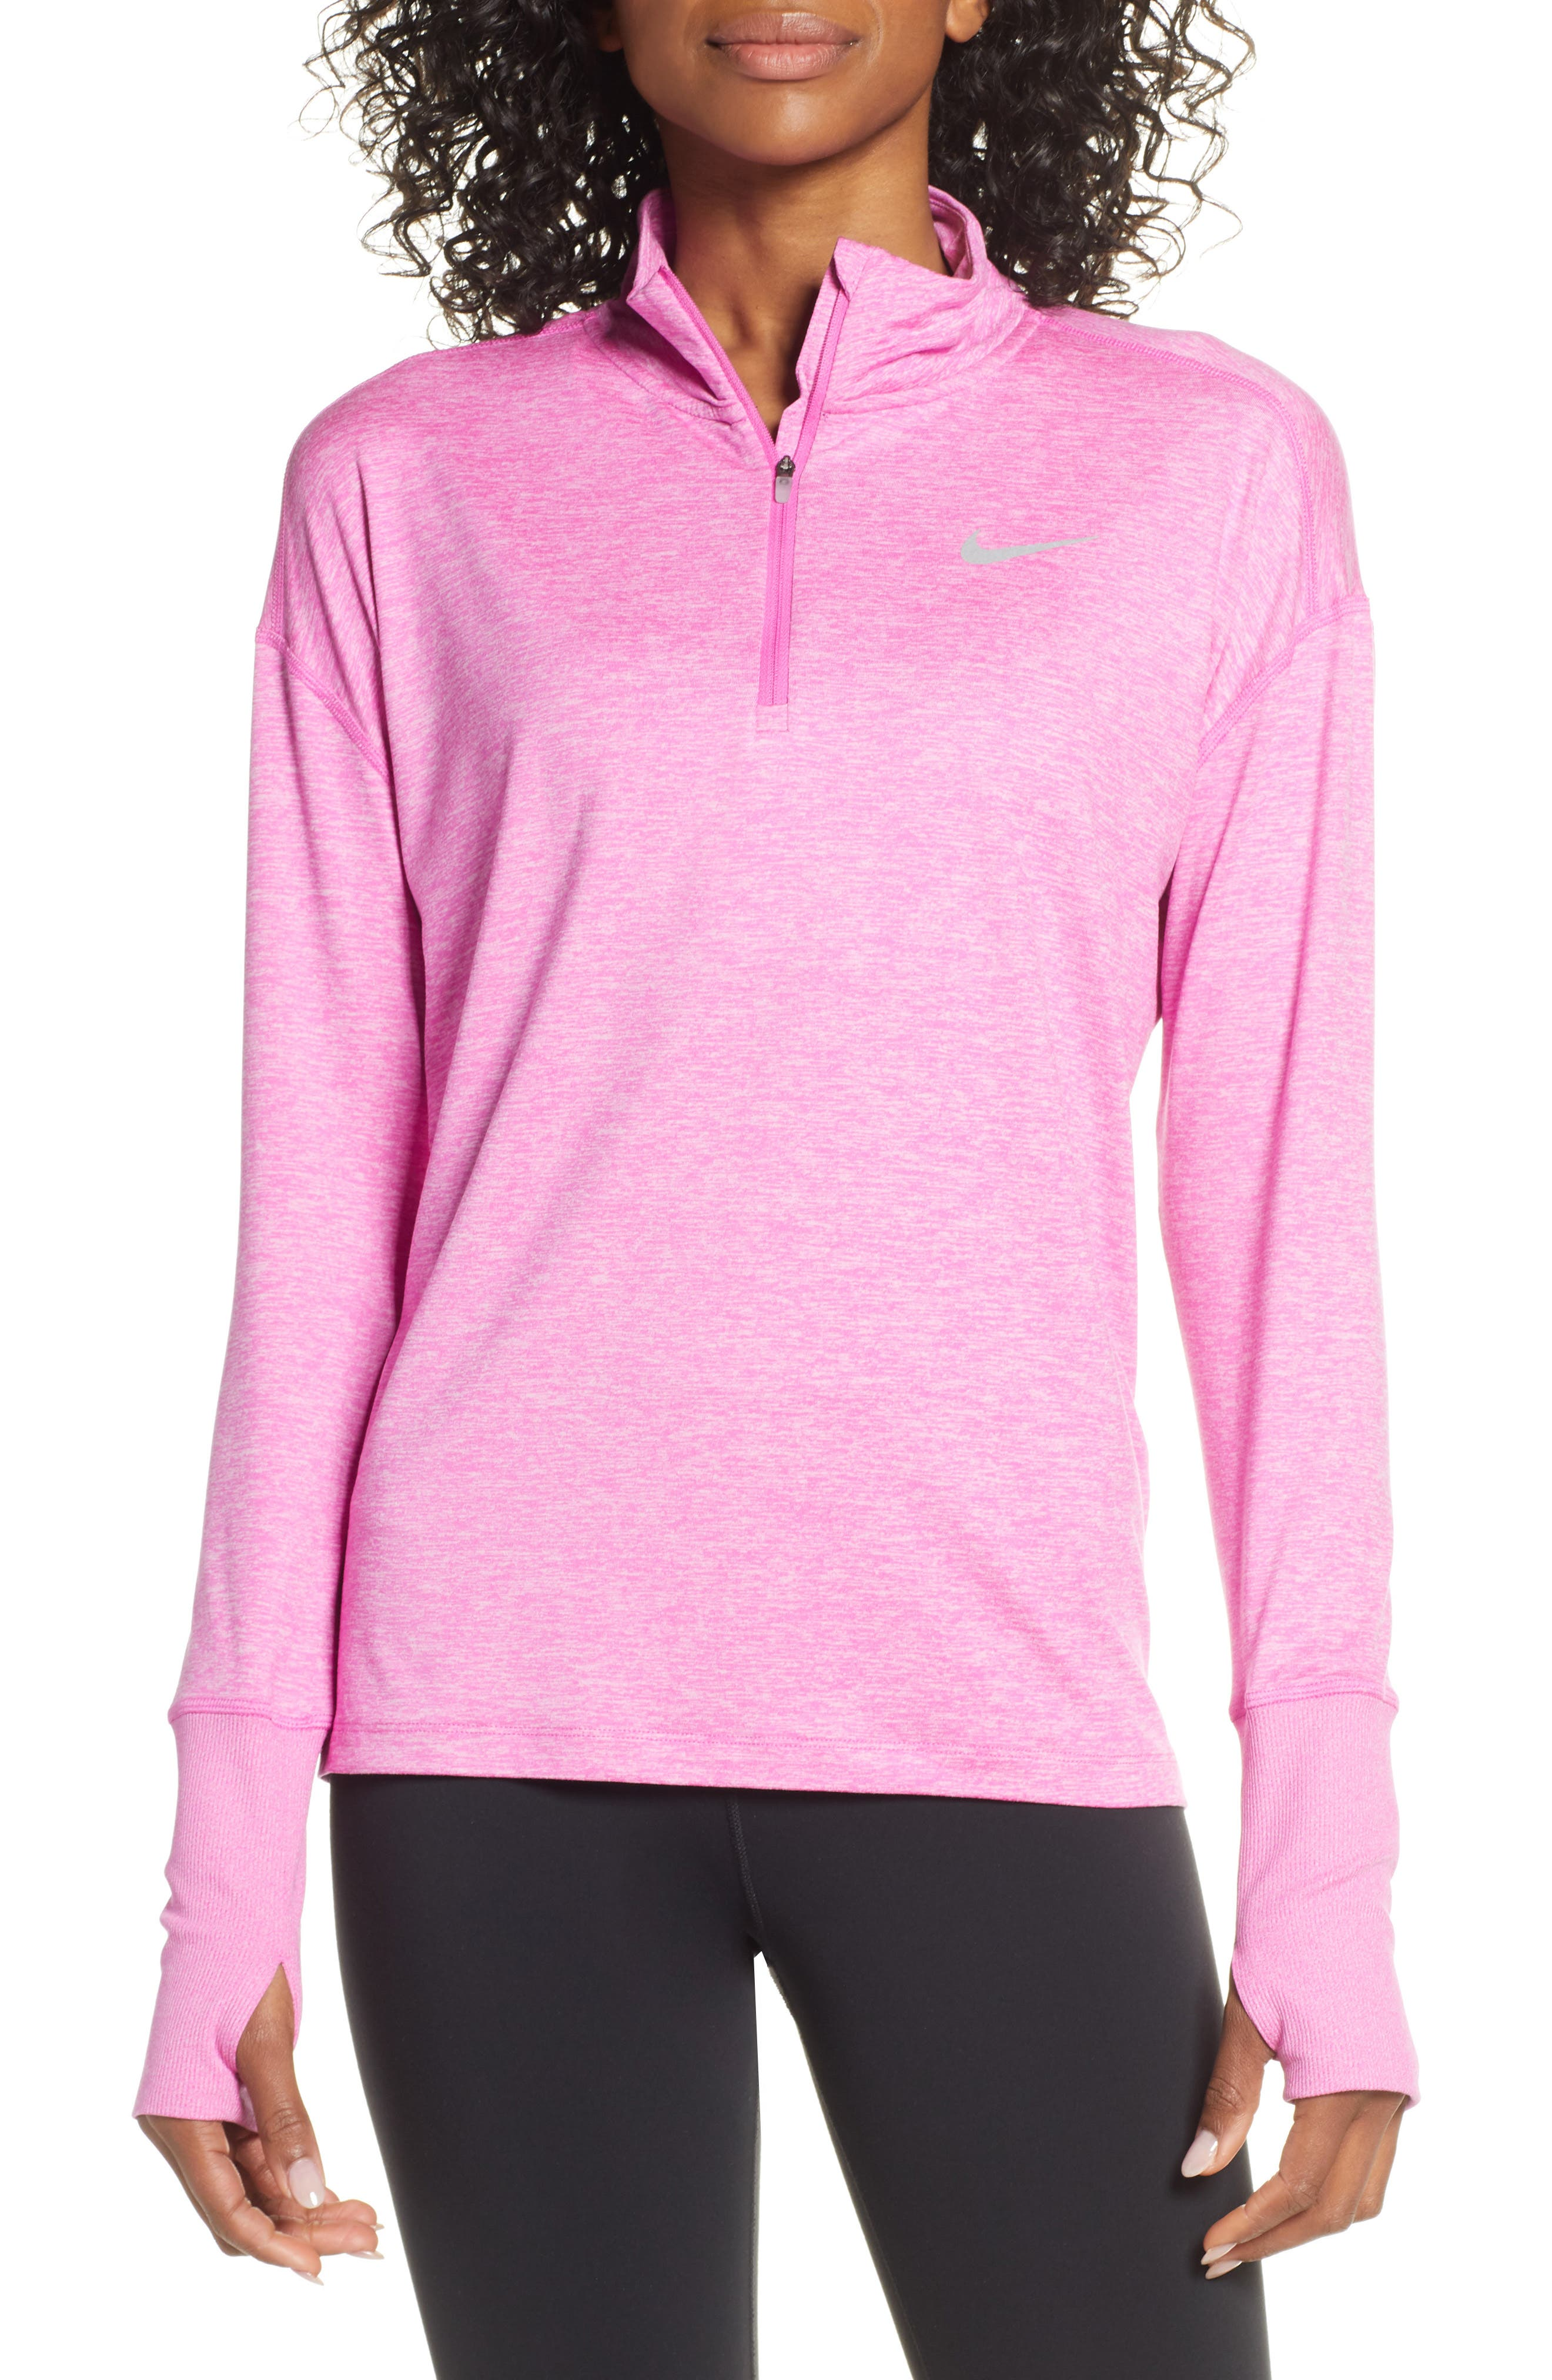 NIKE, Element Long-Sleeve Running Top, Main thumbnail 1, color, ACTIVE FUCHSIA/ PINK RISE